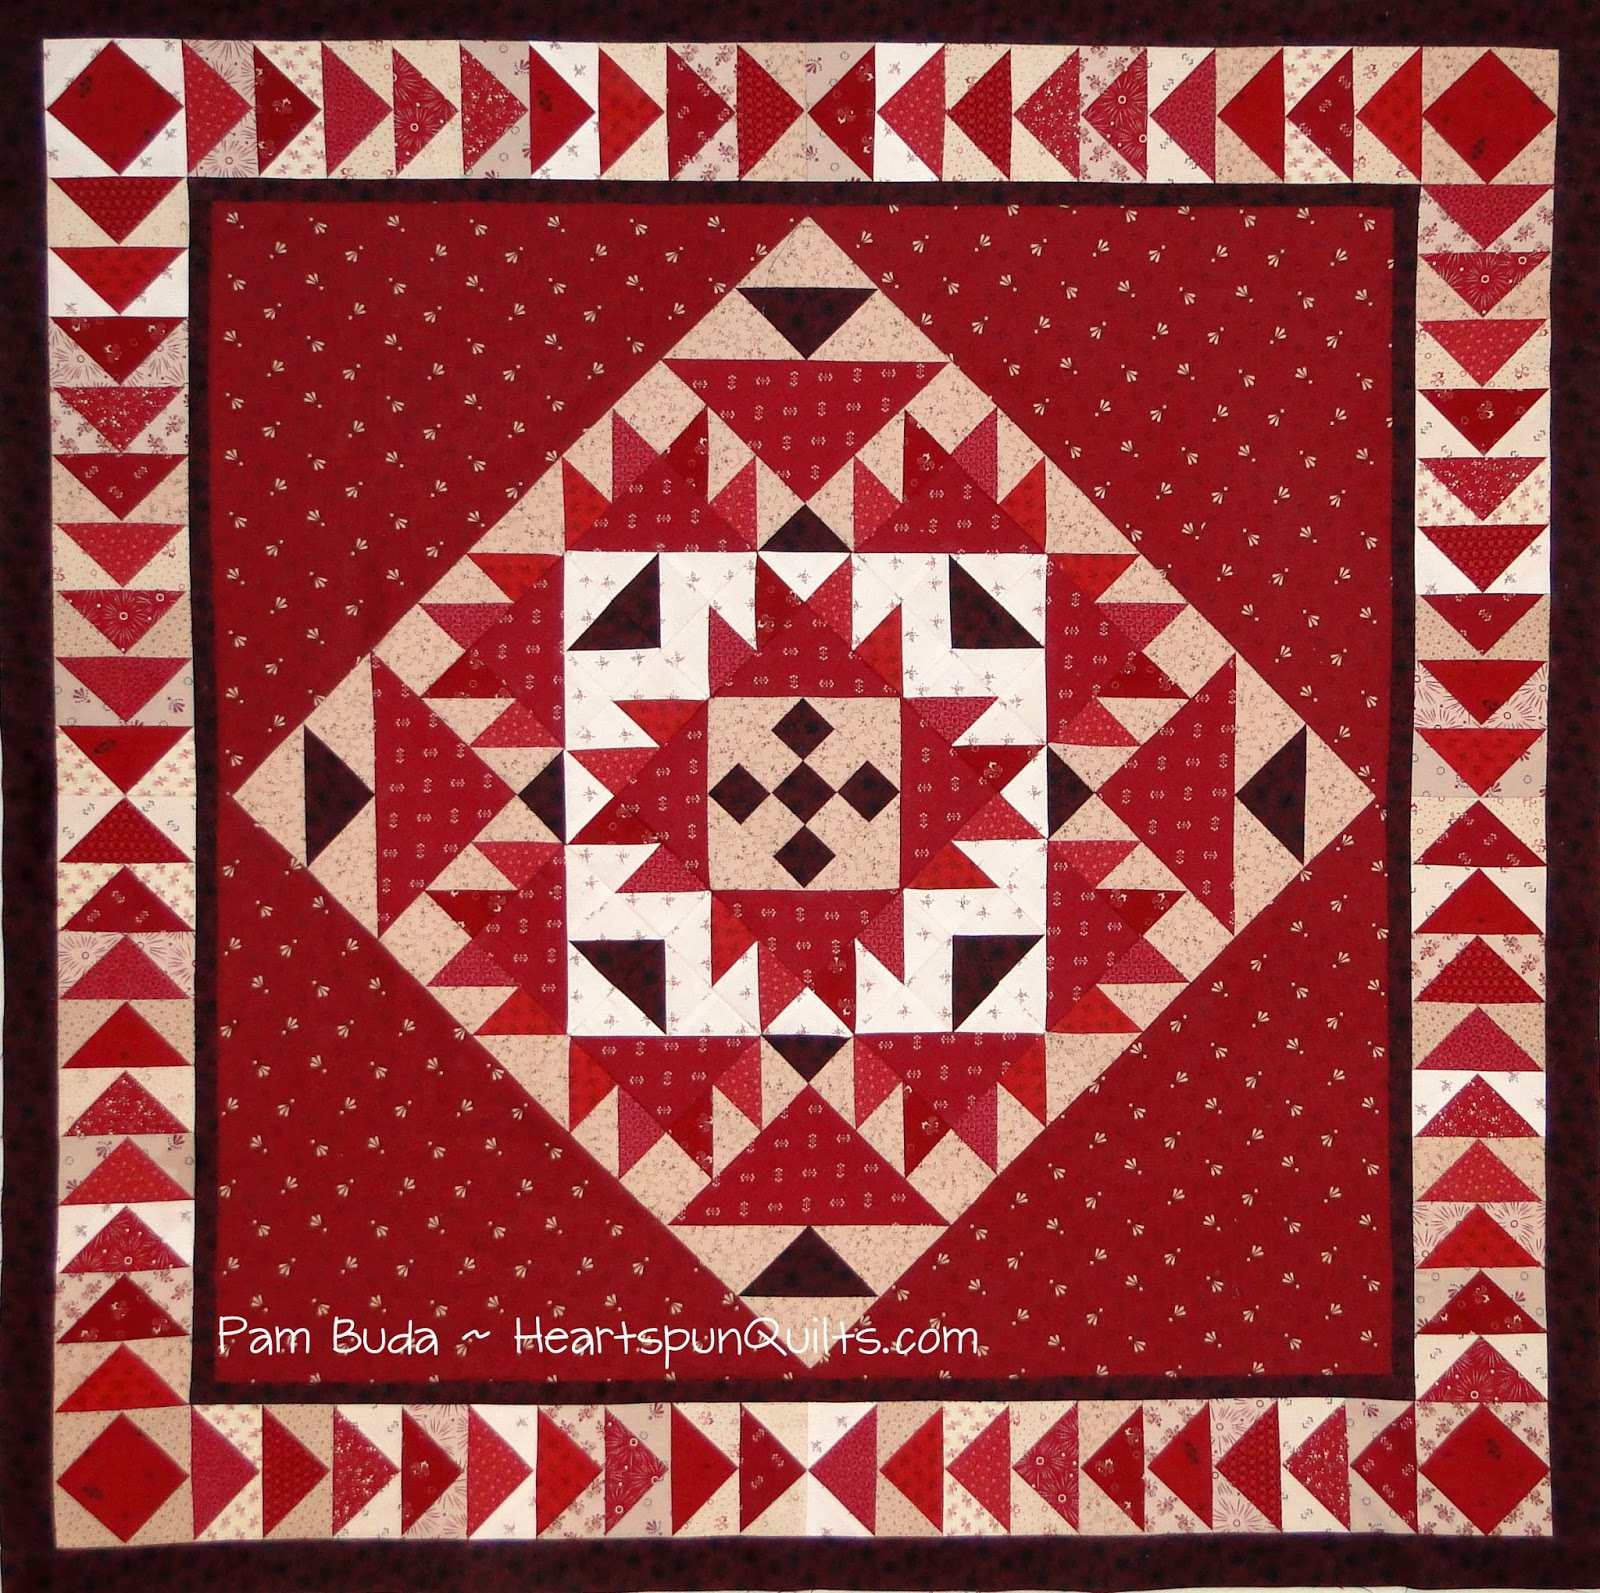 Heartspun Quilts ~ Pam Buda: Prairie Gathering Quilt of the ... : pieced borders for quilts - Adamdwight.com